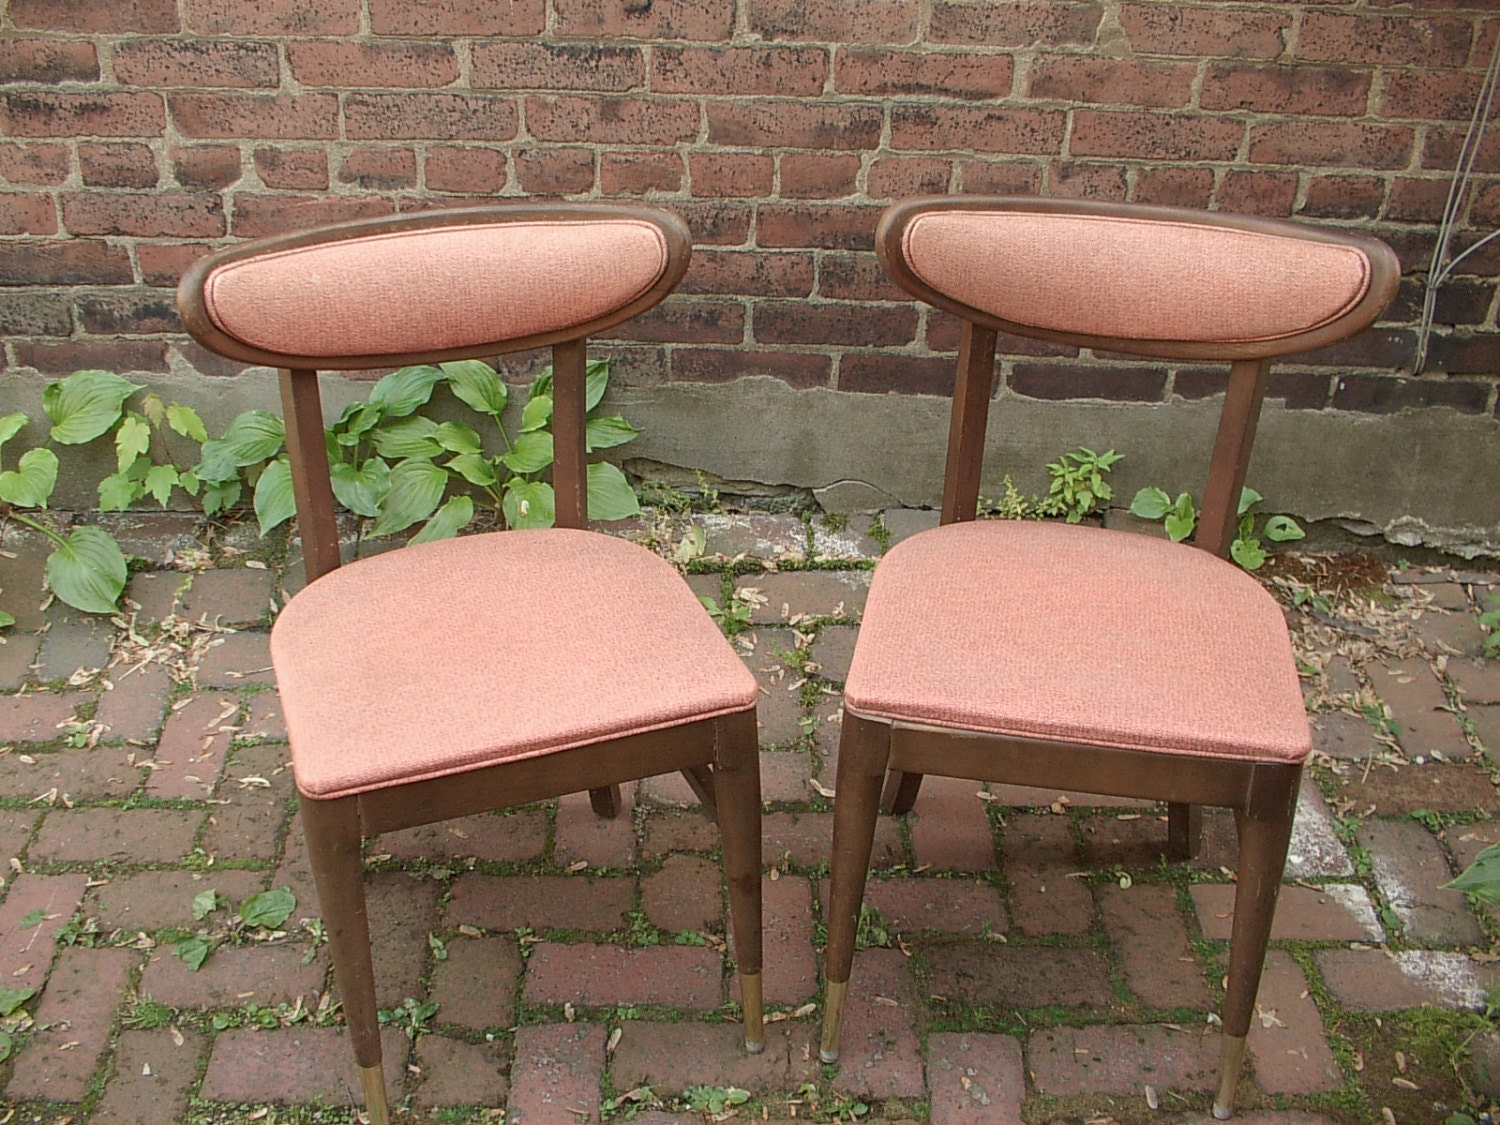 Vintage 1960 39 s mid century modern dining chairs by for Mid century modern dining chairs vintage